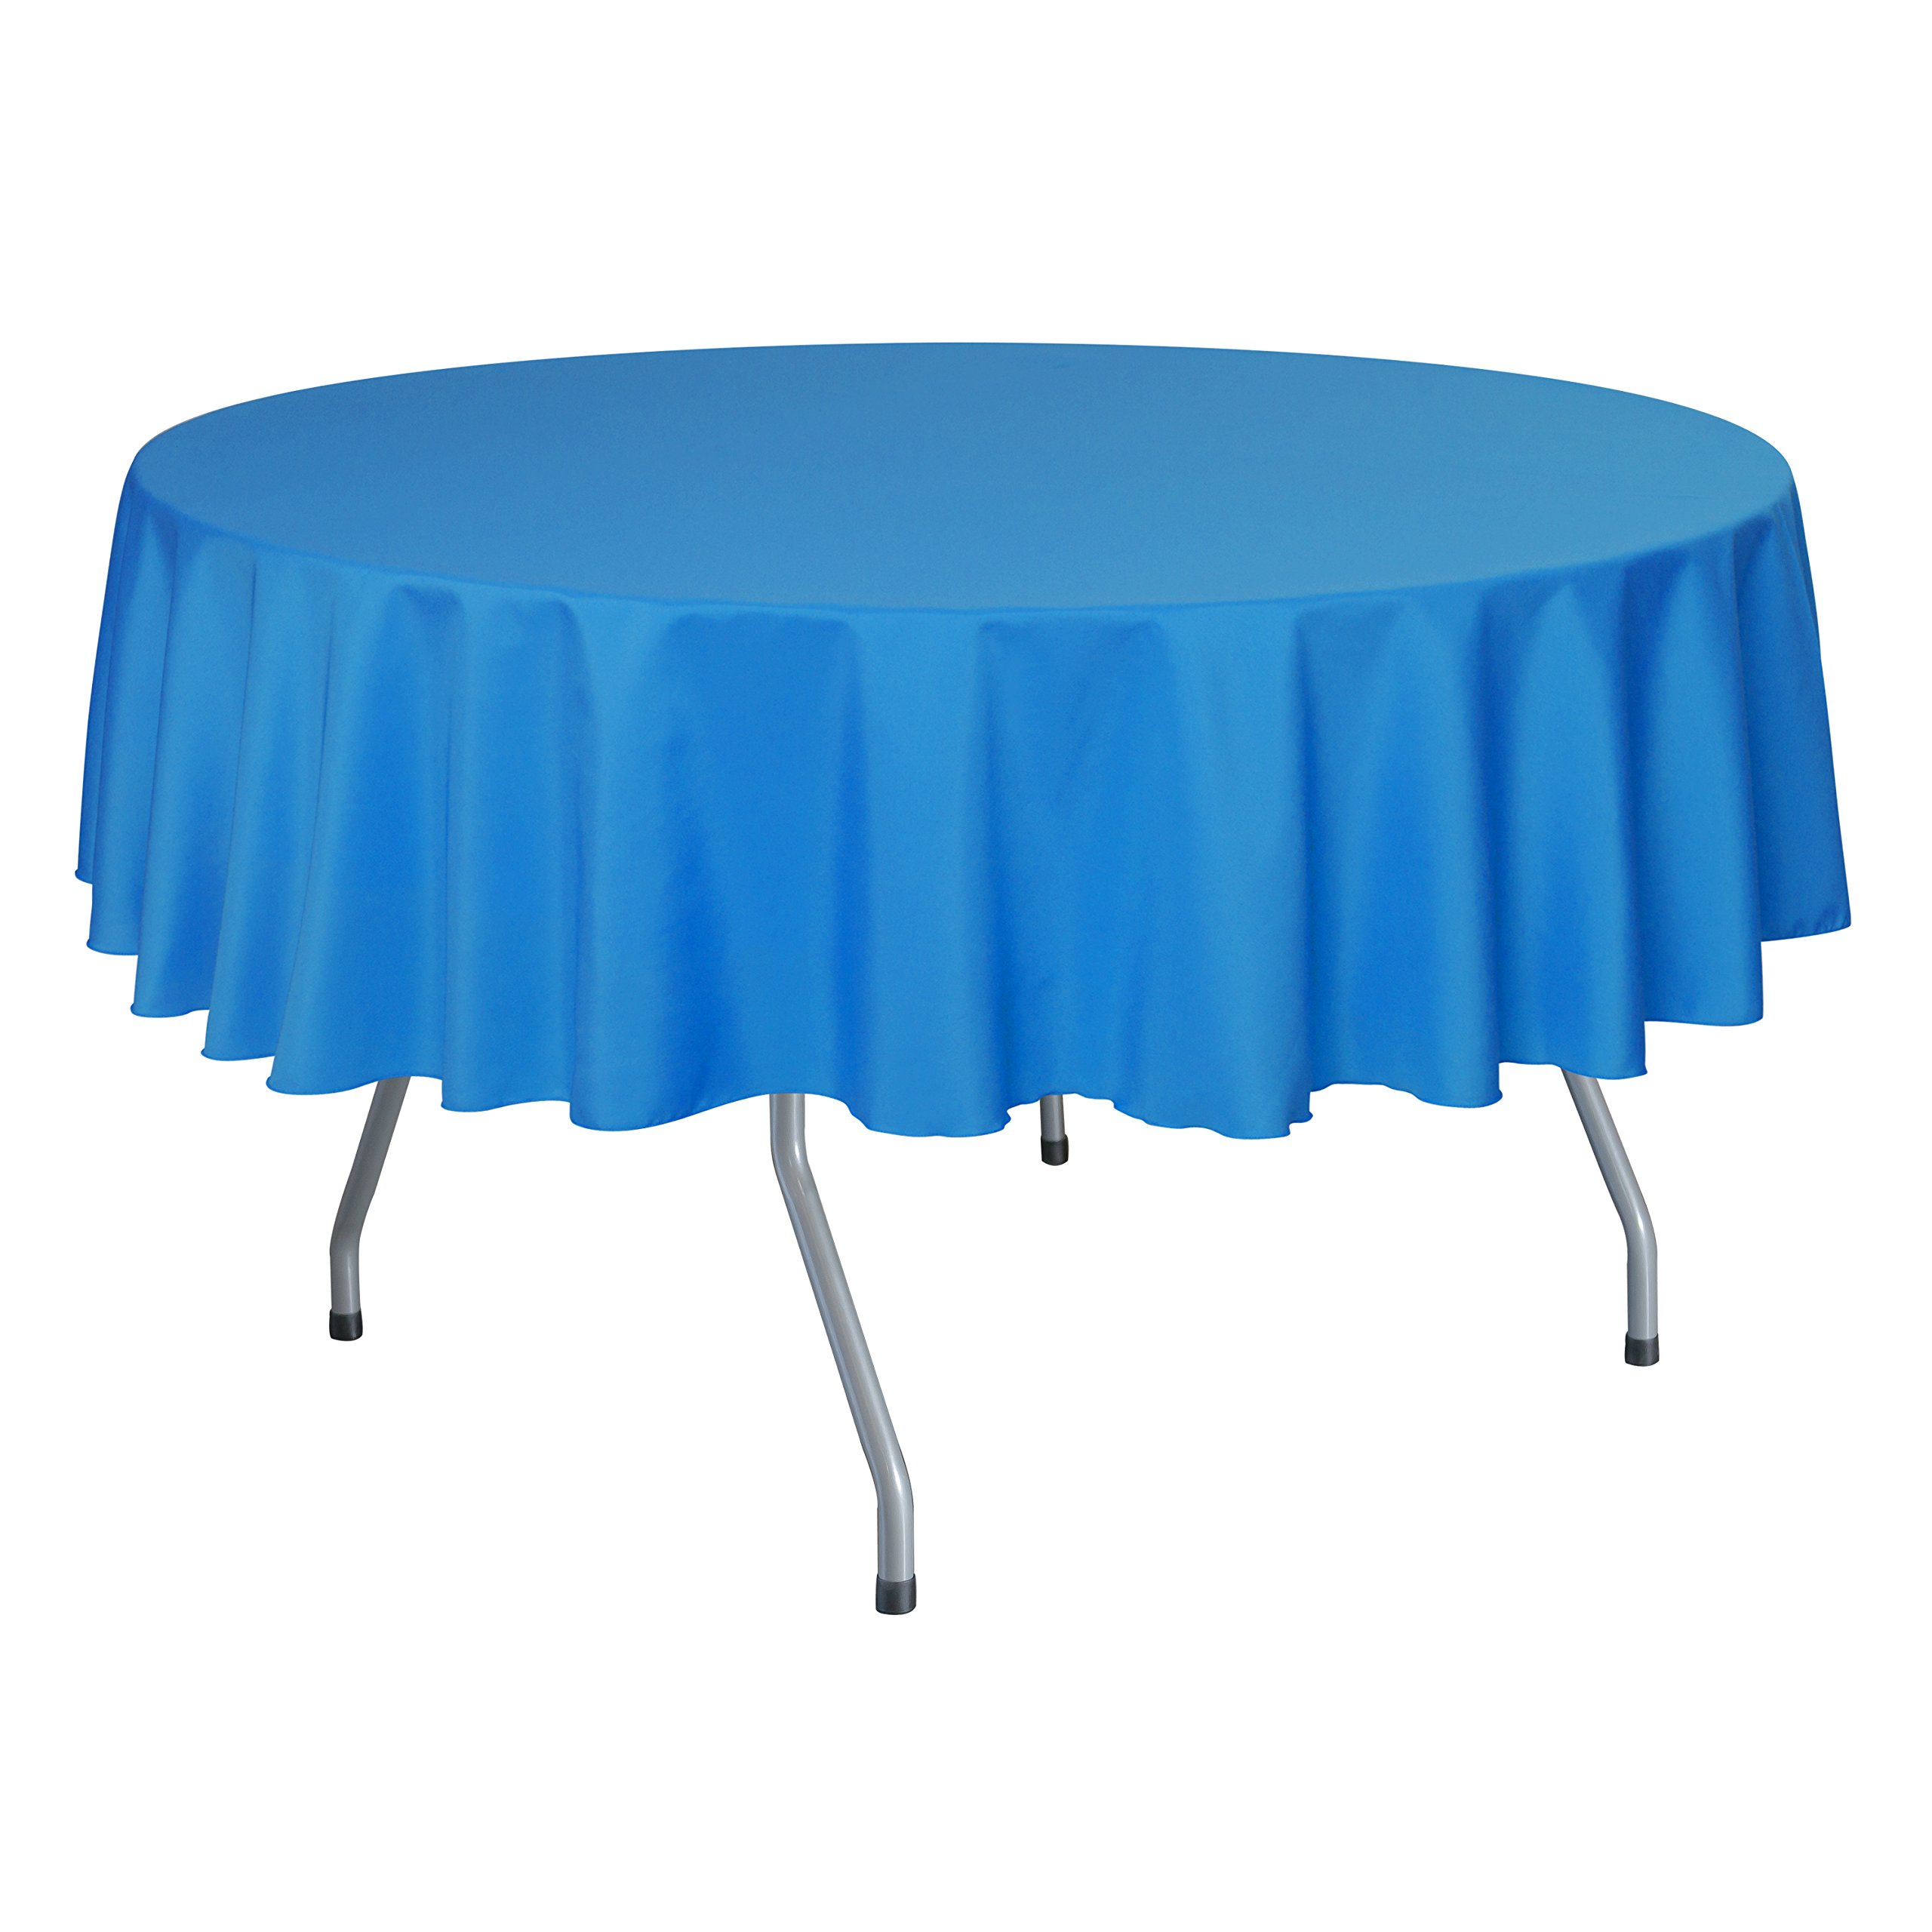 Ultimate Textile (10 Pack) 84-Inch Round Polyester Linen Tablecloth - for Wedding, Restaurant or Banquet use, Cobalt Blue by Ultimate Textile (Image #1)